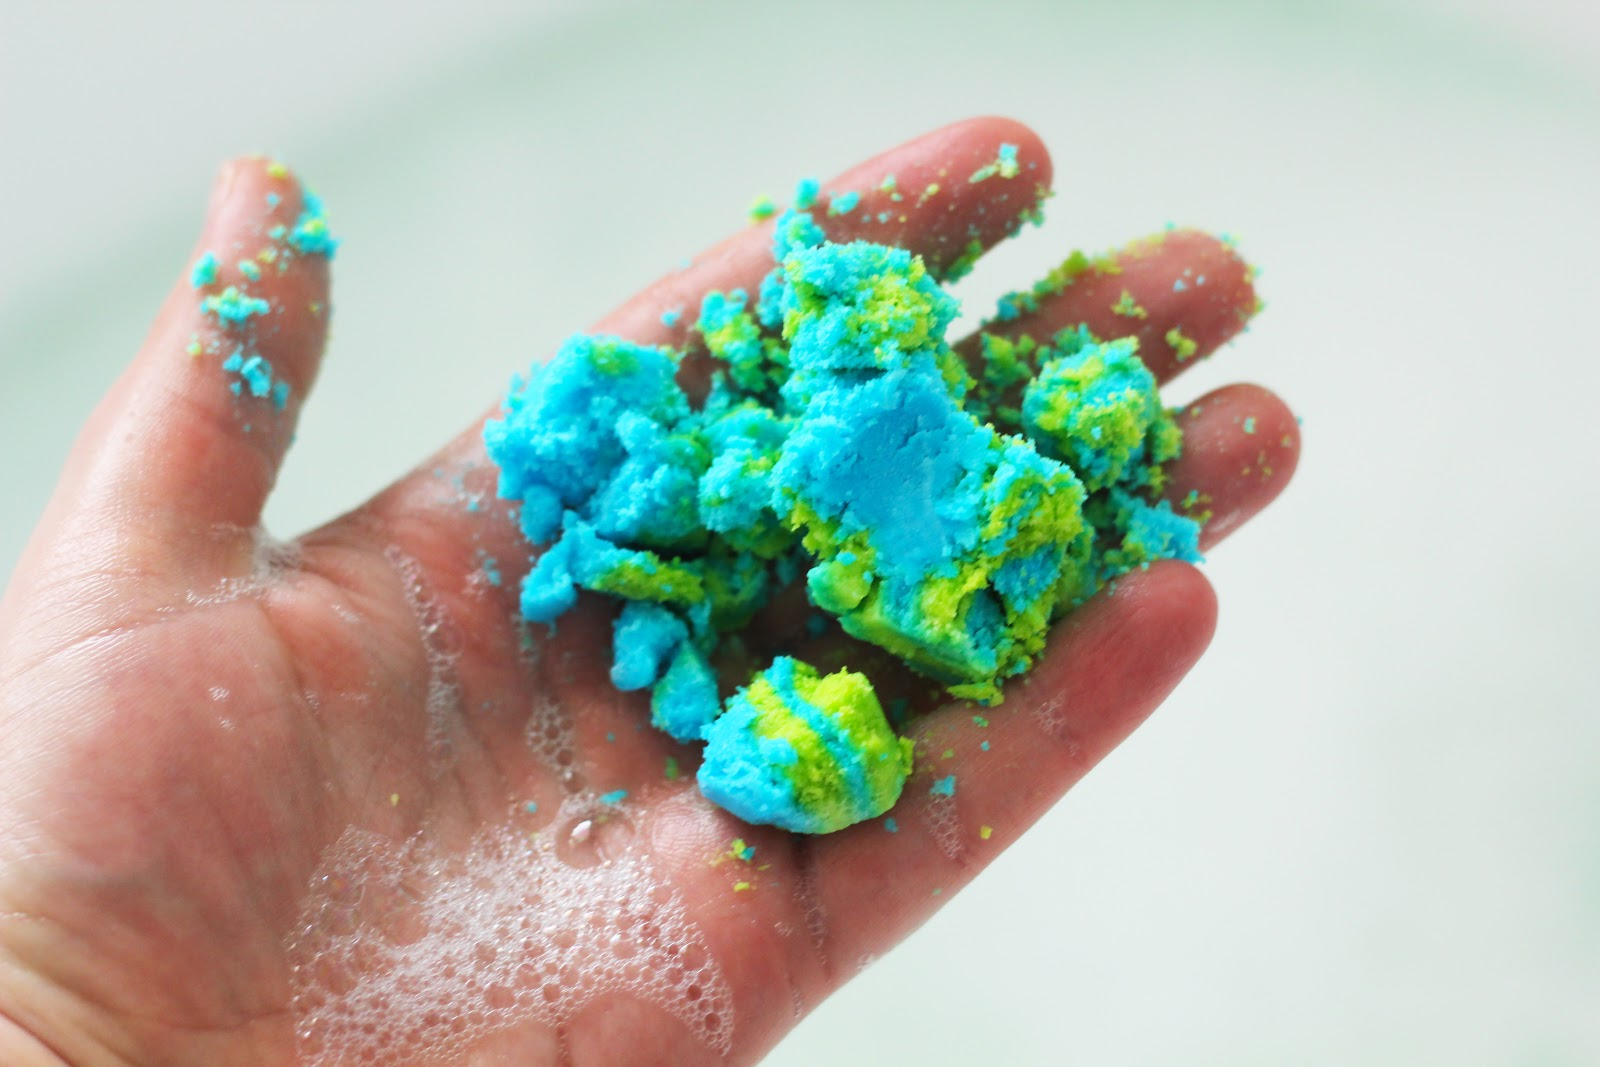 DIY Lush Bubble Bar - Electric Lemonade Cocktail scented, Electic Green & Electric Blue colouring from Americolor